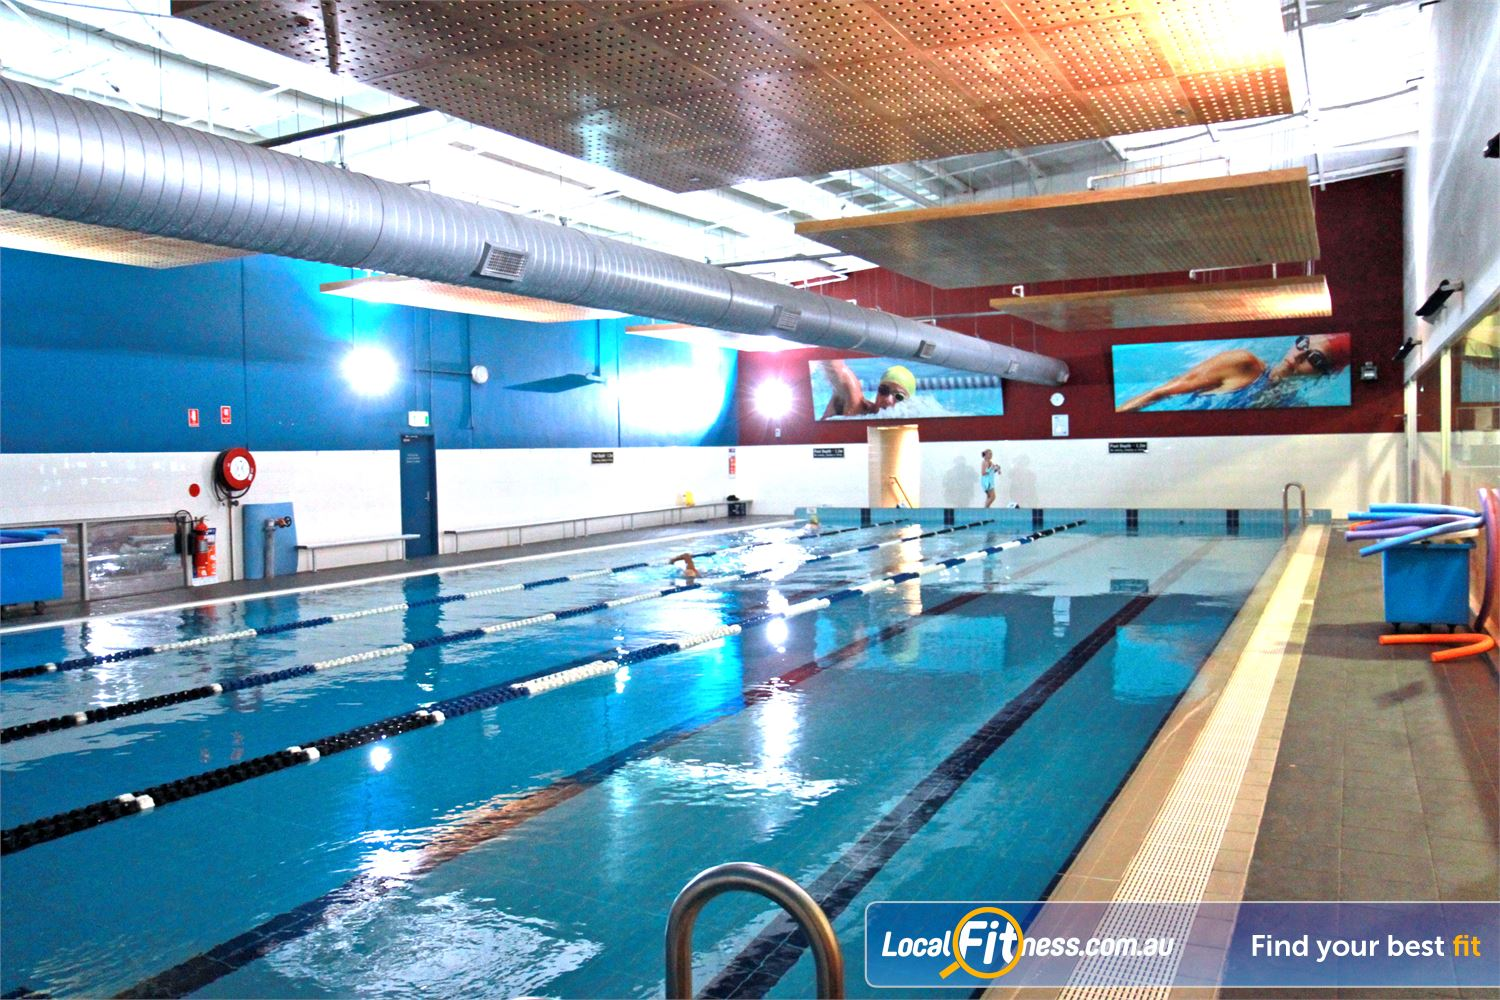 Fitness First Rockdale The open plan space give members a relaxing Rockdale swimming experience.